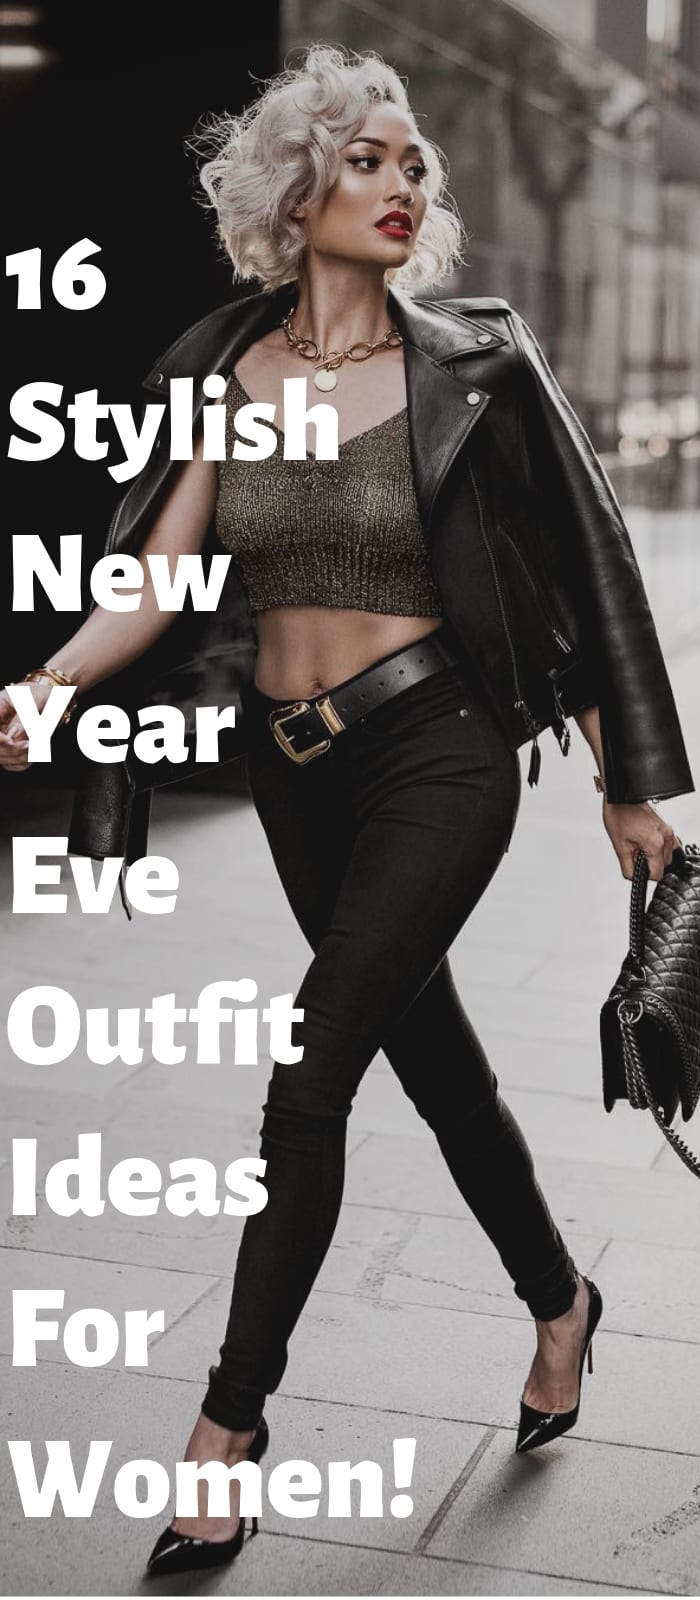 16 Stylish New Year Eve Outfit Ideas For Women.